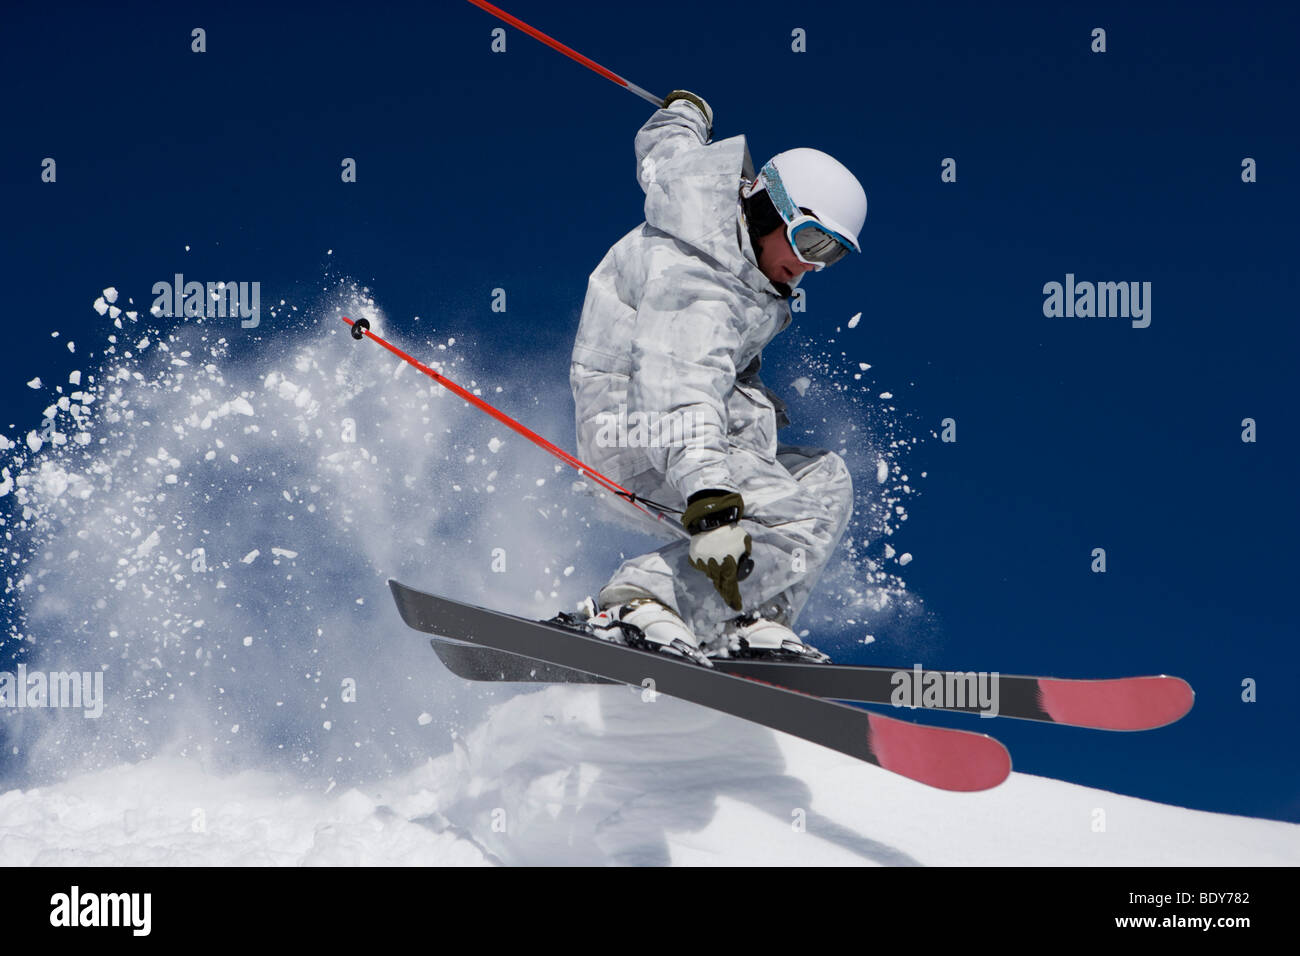 Man in white & grey camo suit off-piste. - Stock Image